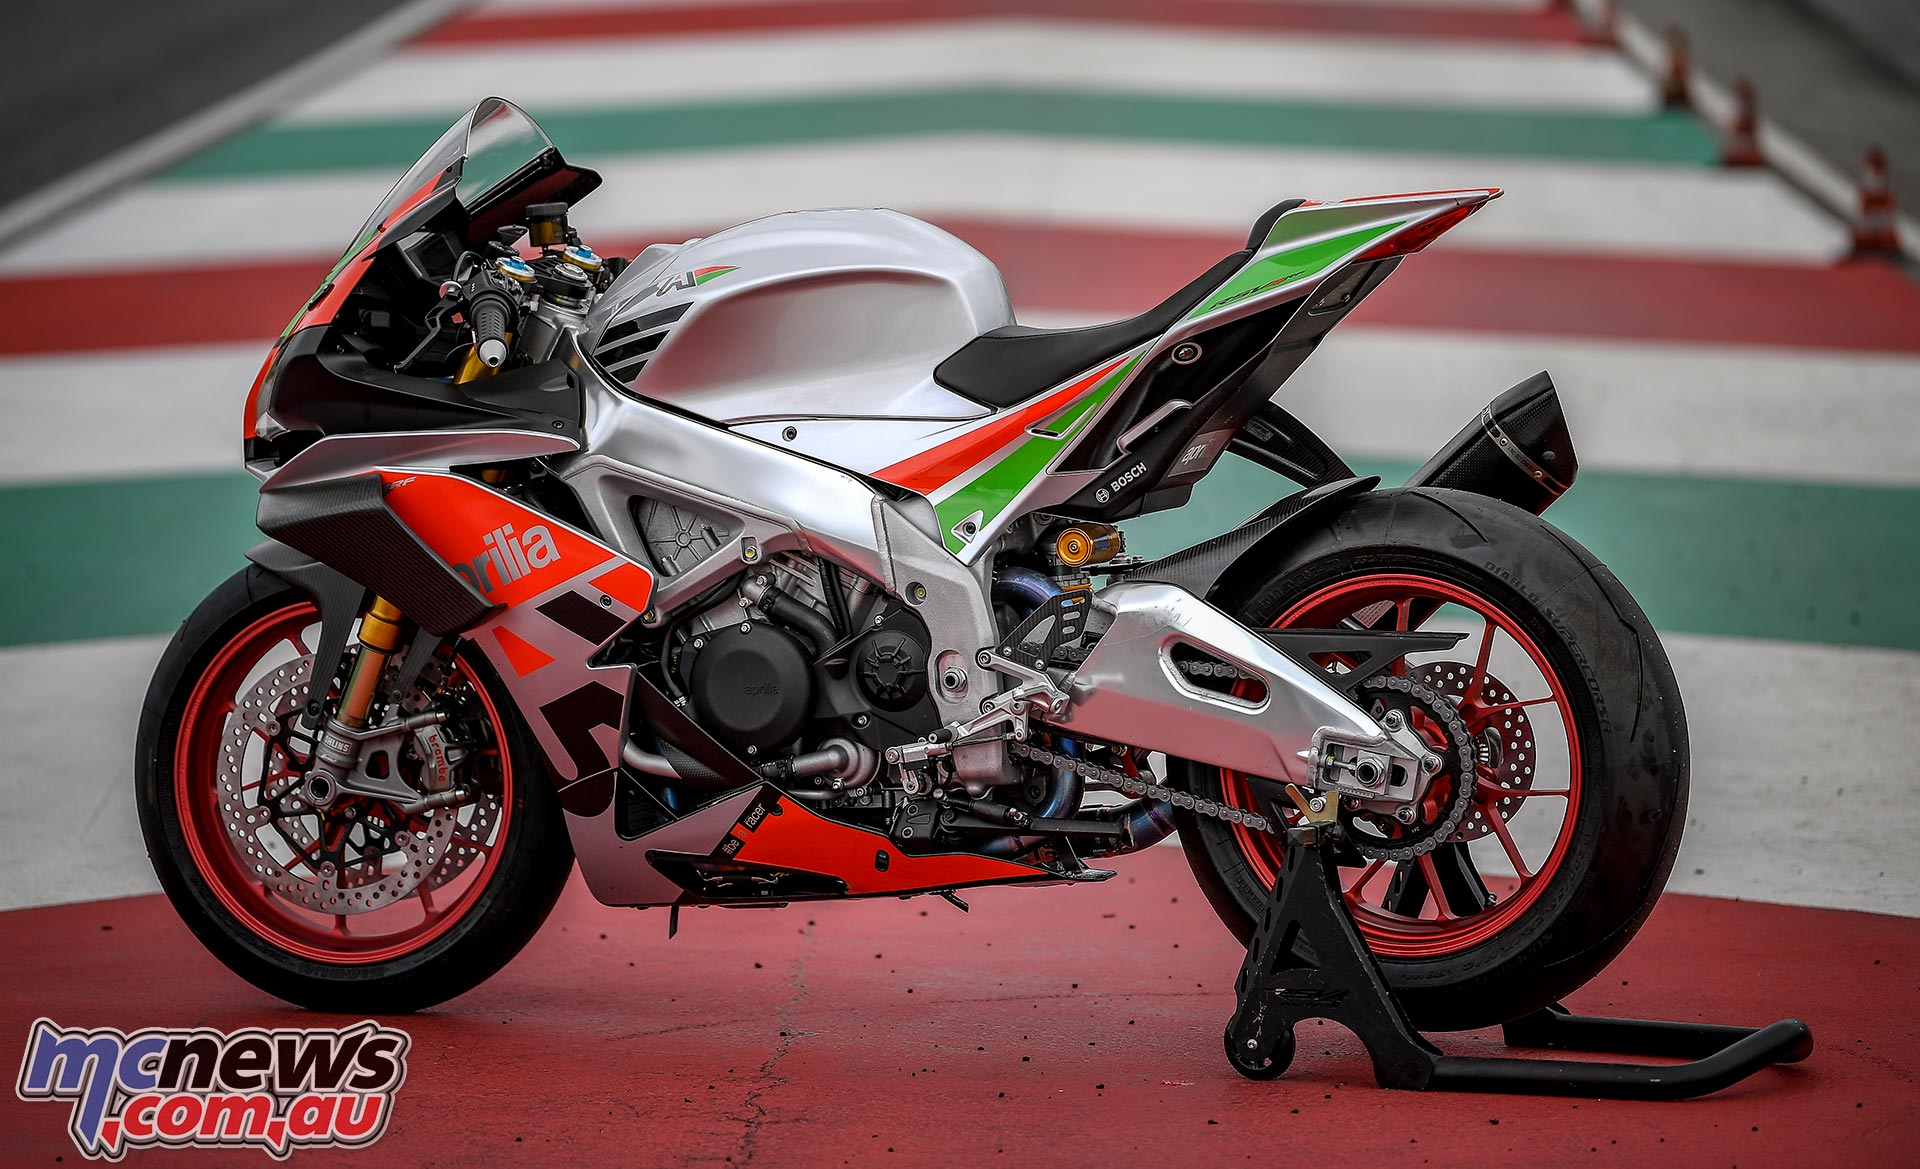 Pump Your Rsv4 Up To 215hp With Factory Works Kit Mcnewscomau